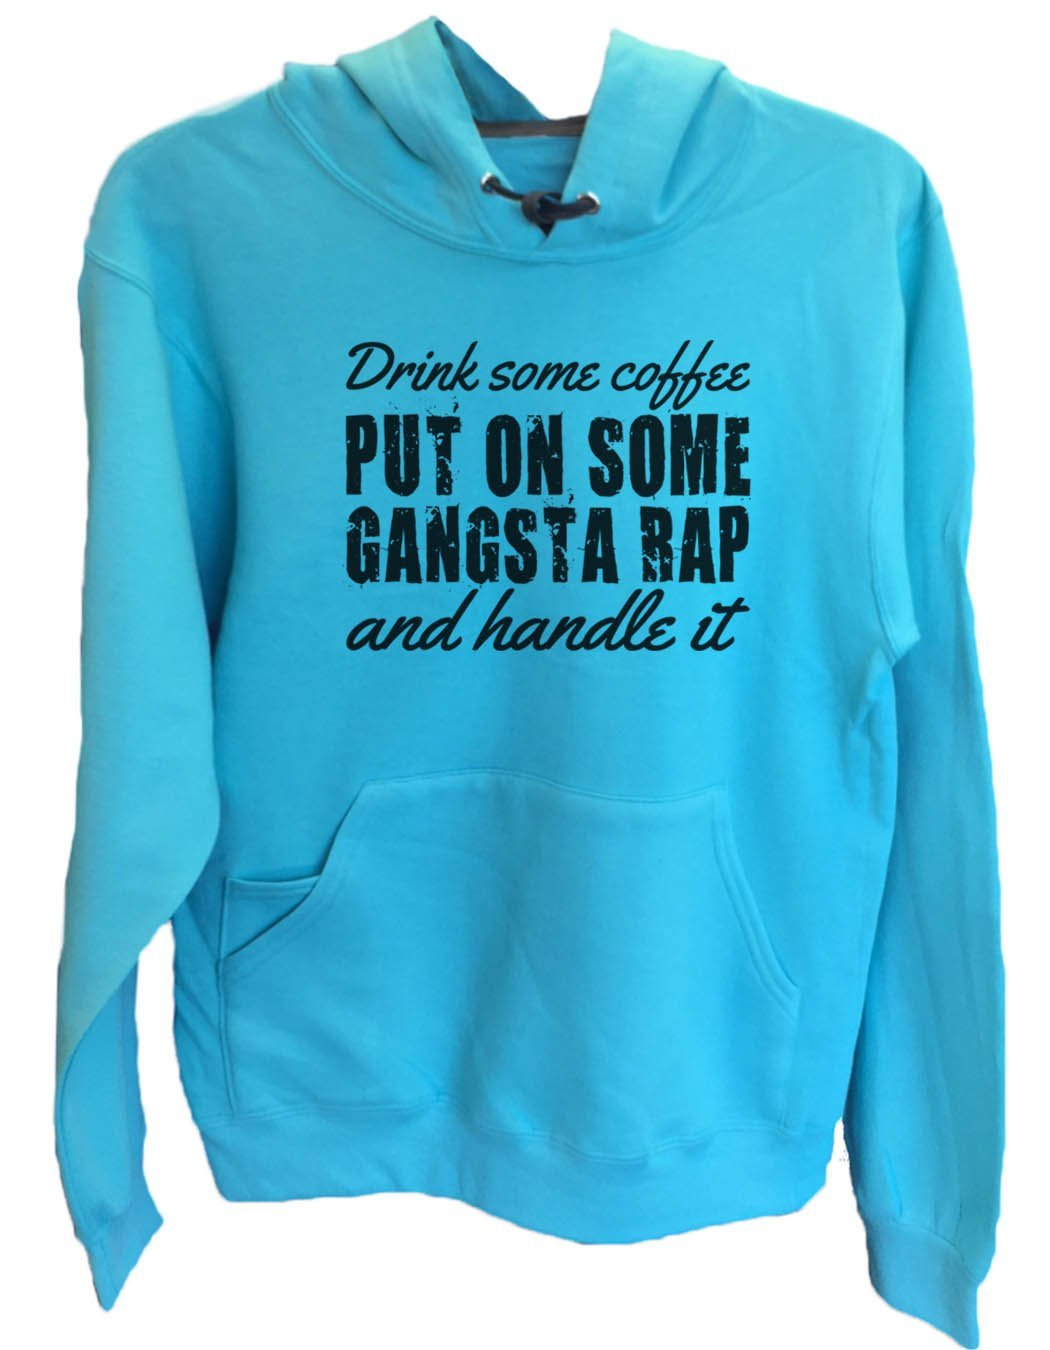 UNISEX HOODIE - Drink some coffee put on some gangsta rap and handle it - FUNNY MENS AND WOMENS HOODED SWEATSHIRTS - 956 Funny Shirt Small / Turquoise